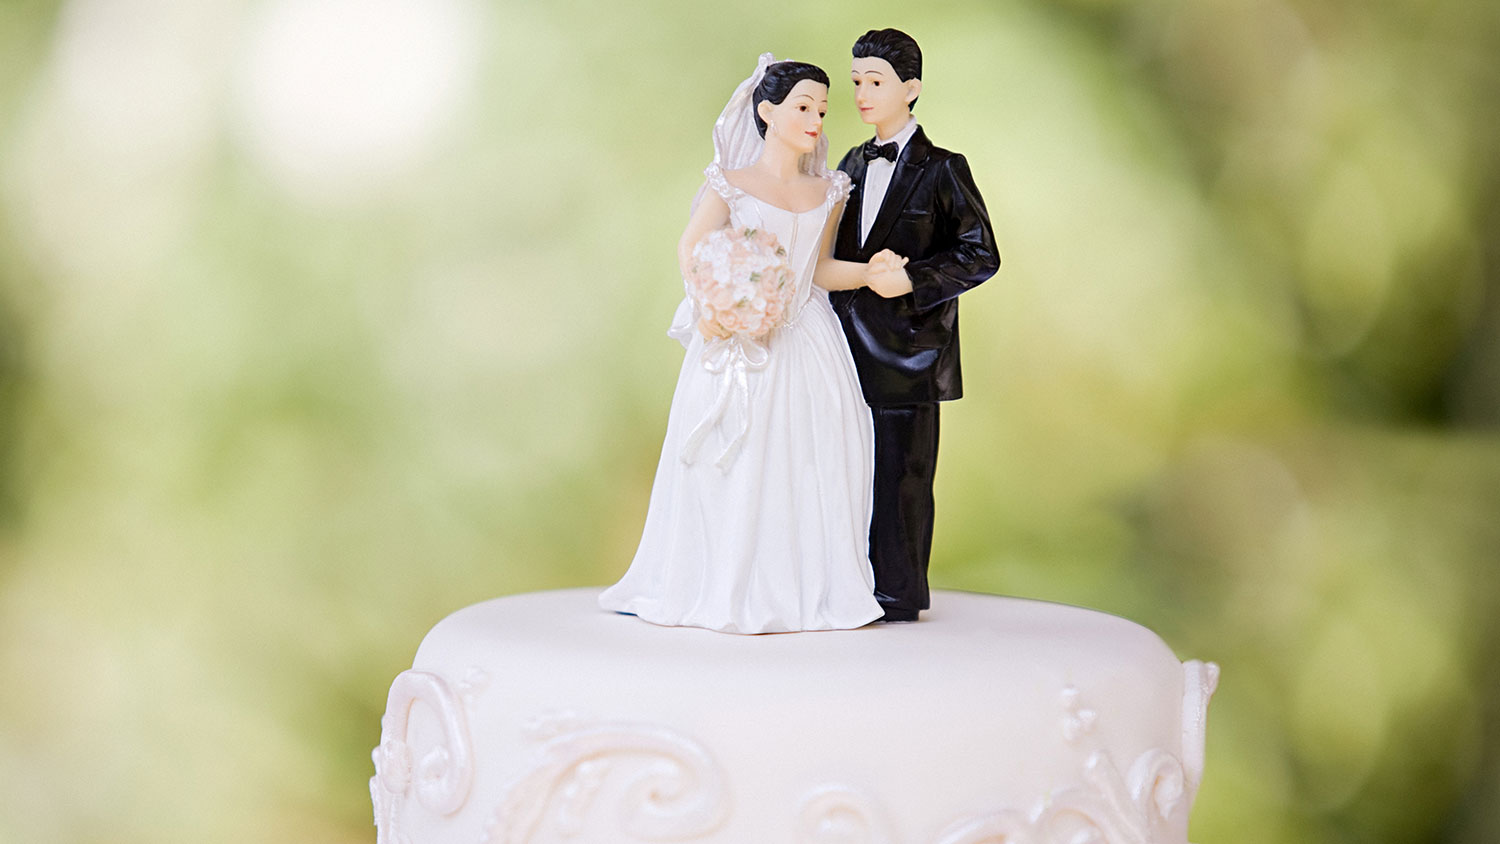 Florida: Cake Toppers